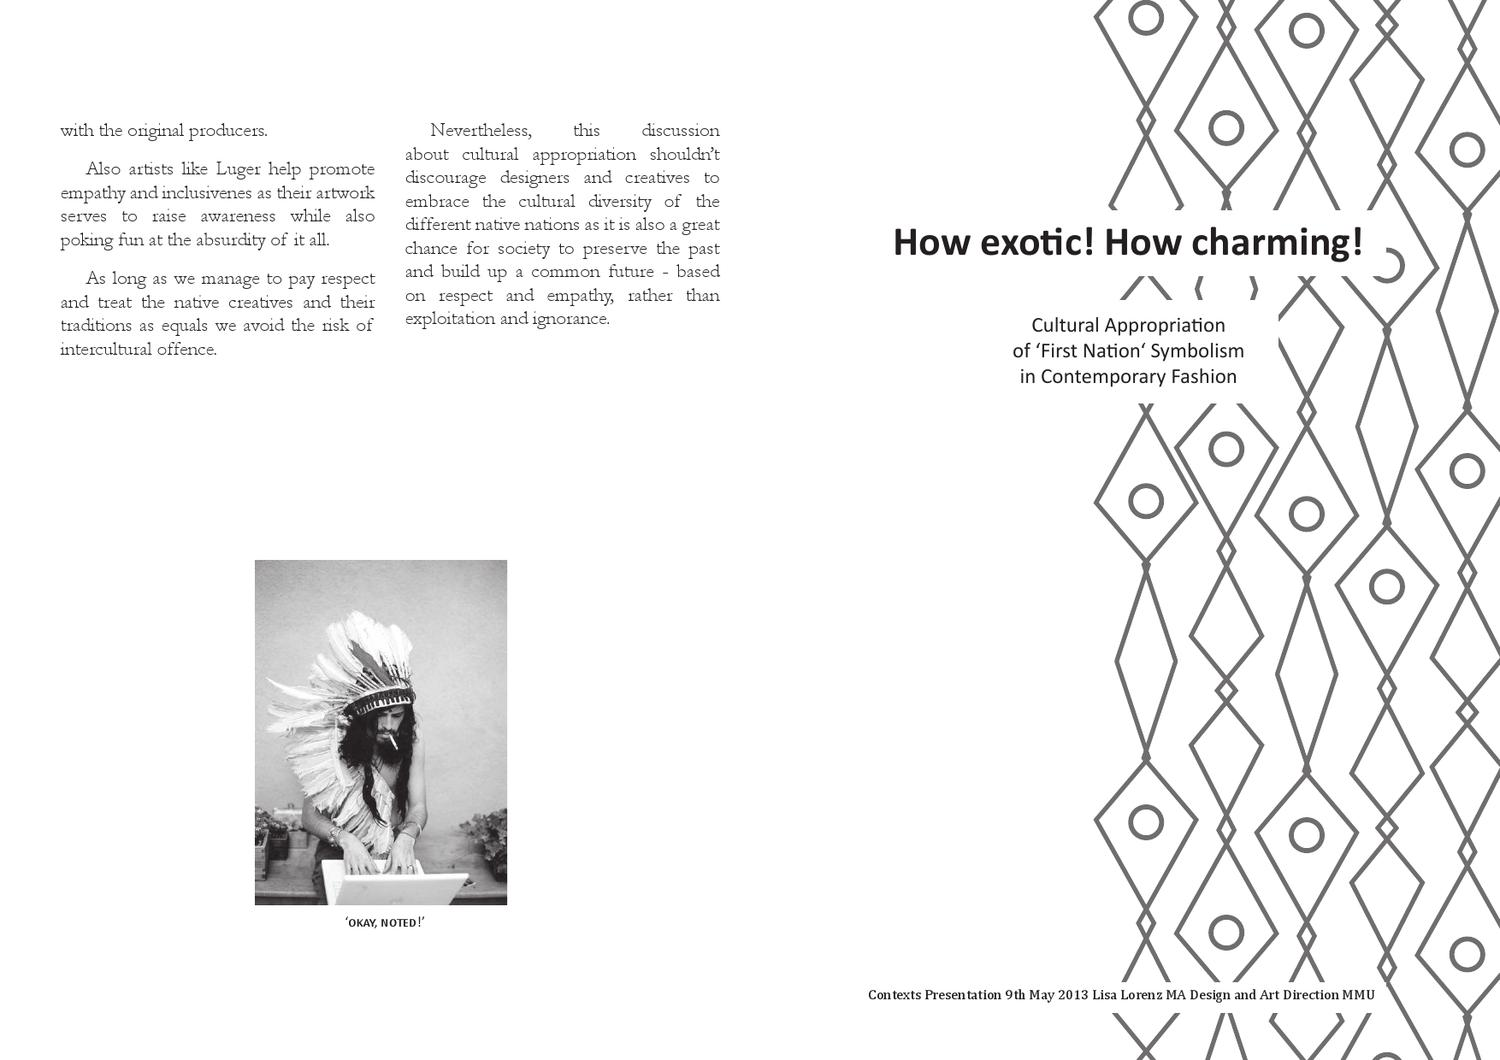 Symbolism in heart of darkness by joseph conrad images symbol cultural appropriation of first nation symbolism in contemporary cultural appropriation of first nation symbolism in contemporary biocorpaavc